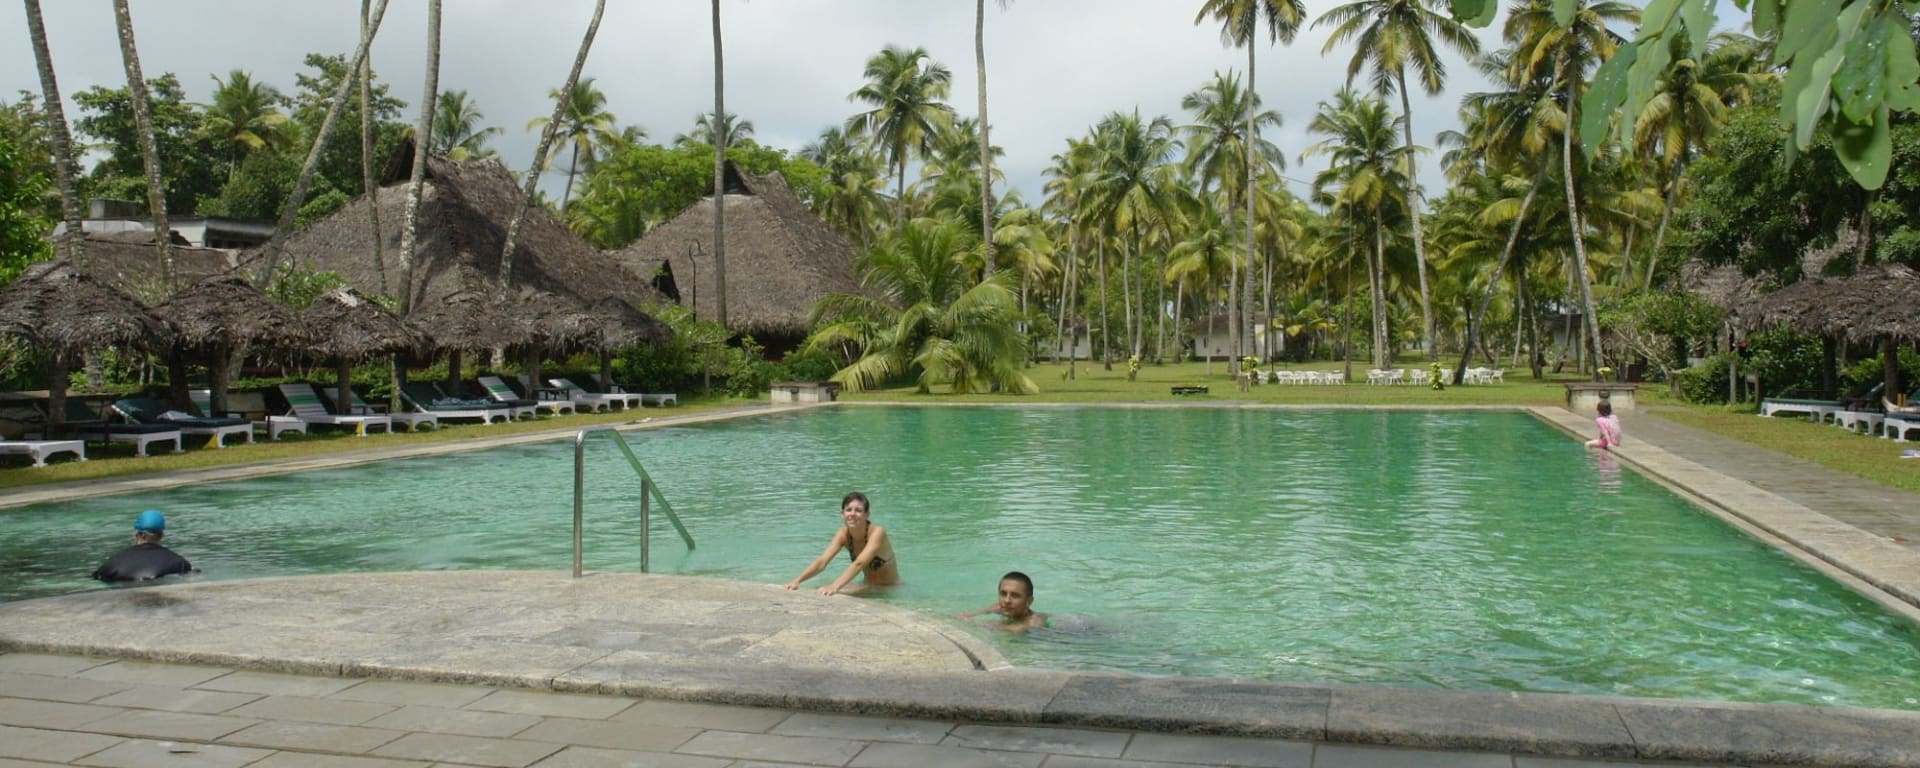 Marari Beach Resort in Mararikulam: